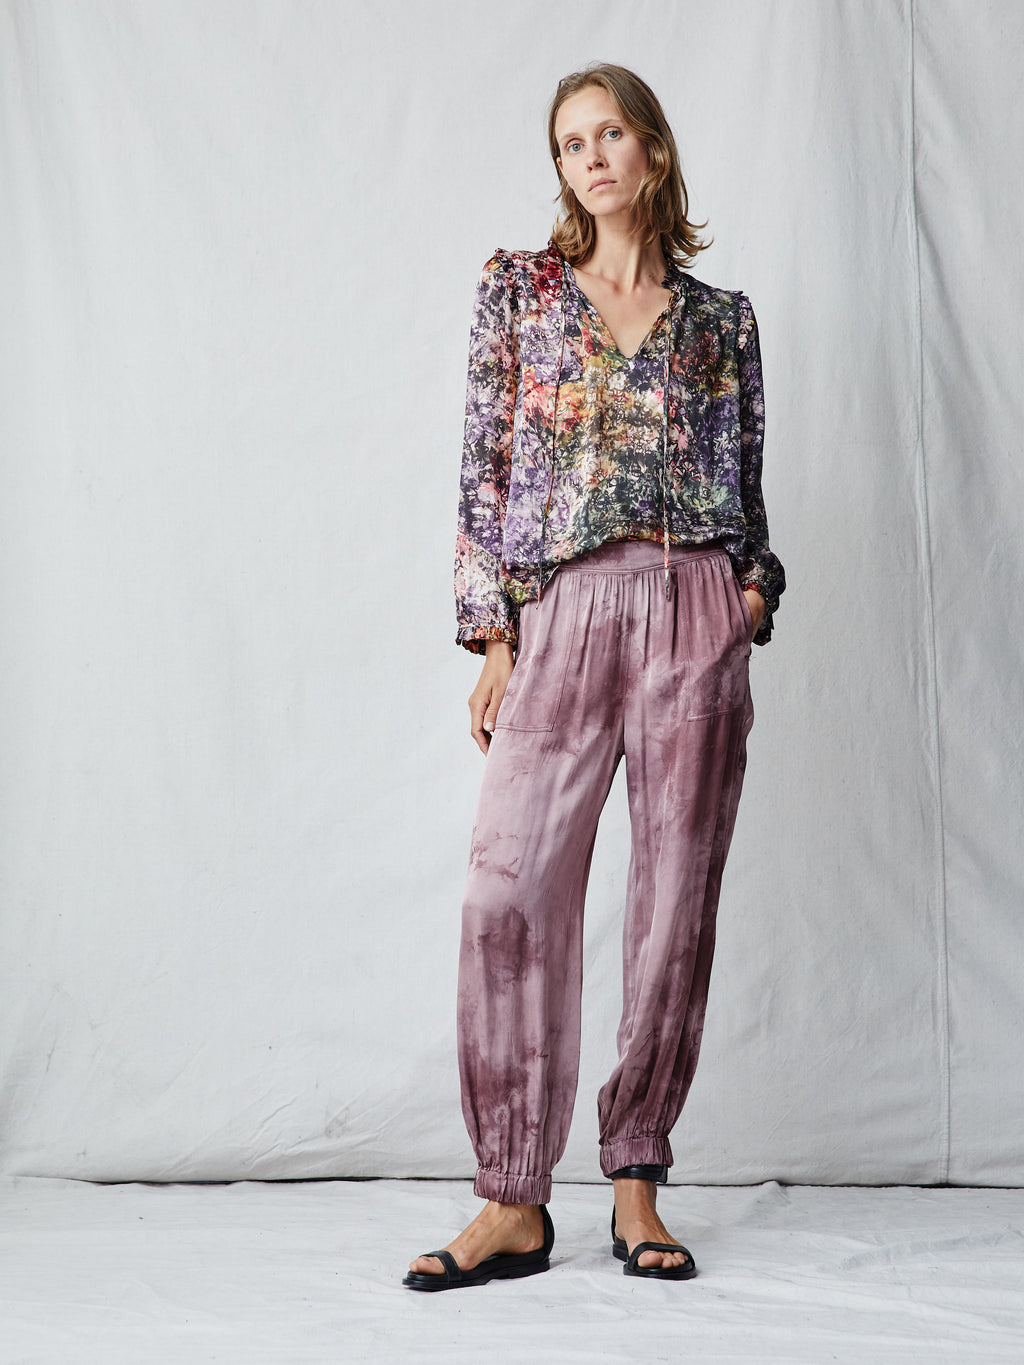 Dark Blush Satin Tie Dye Balloon Pants